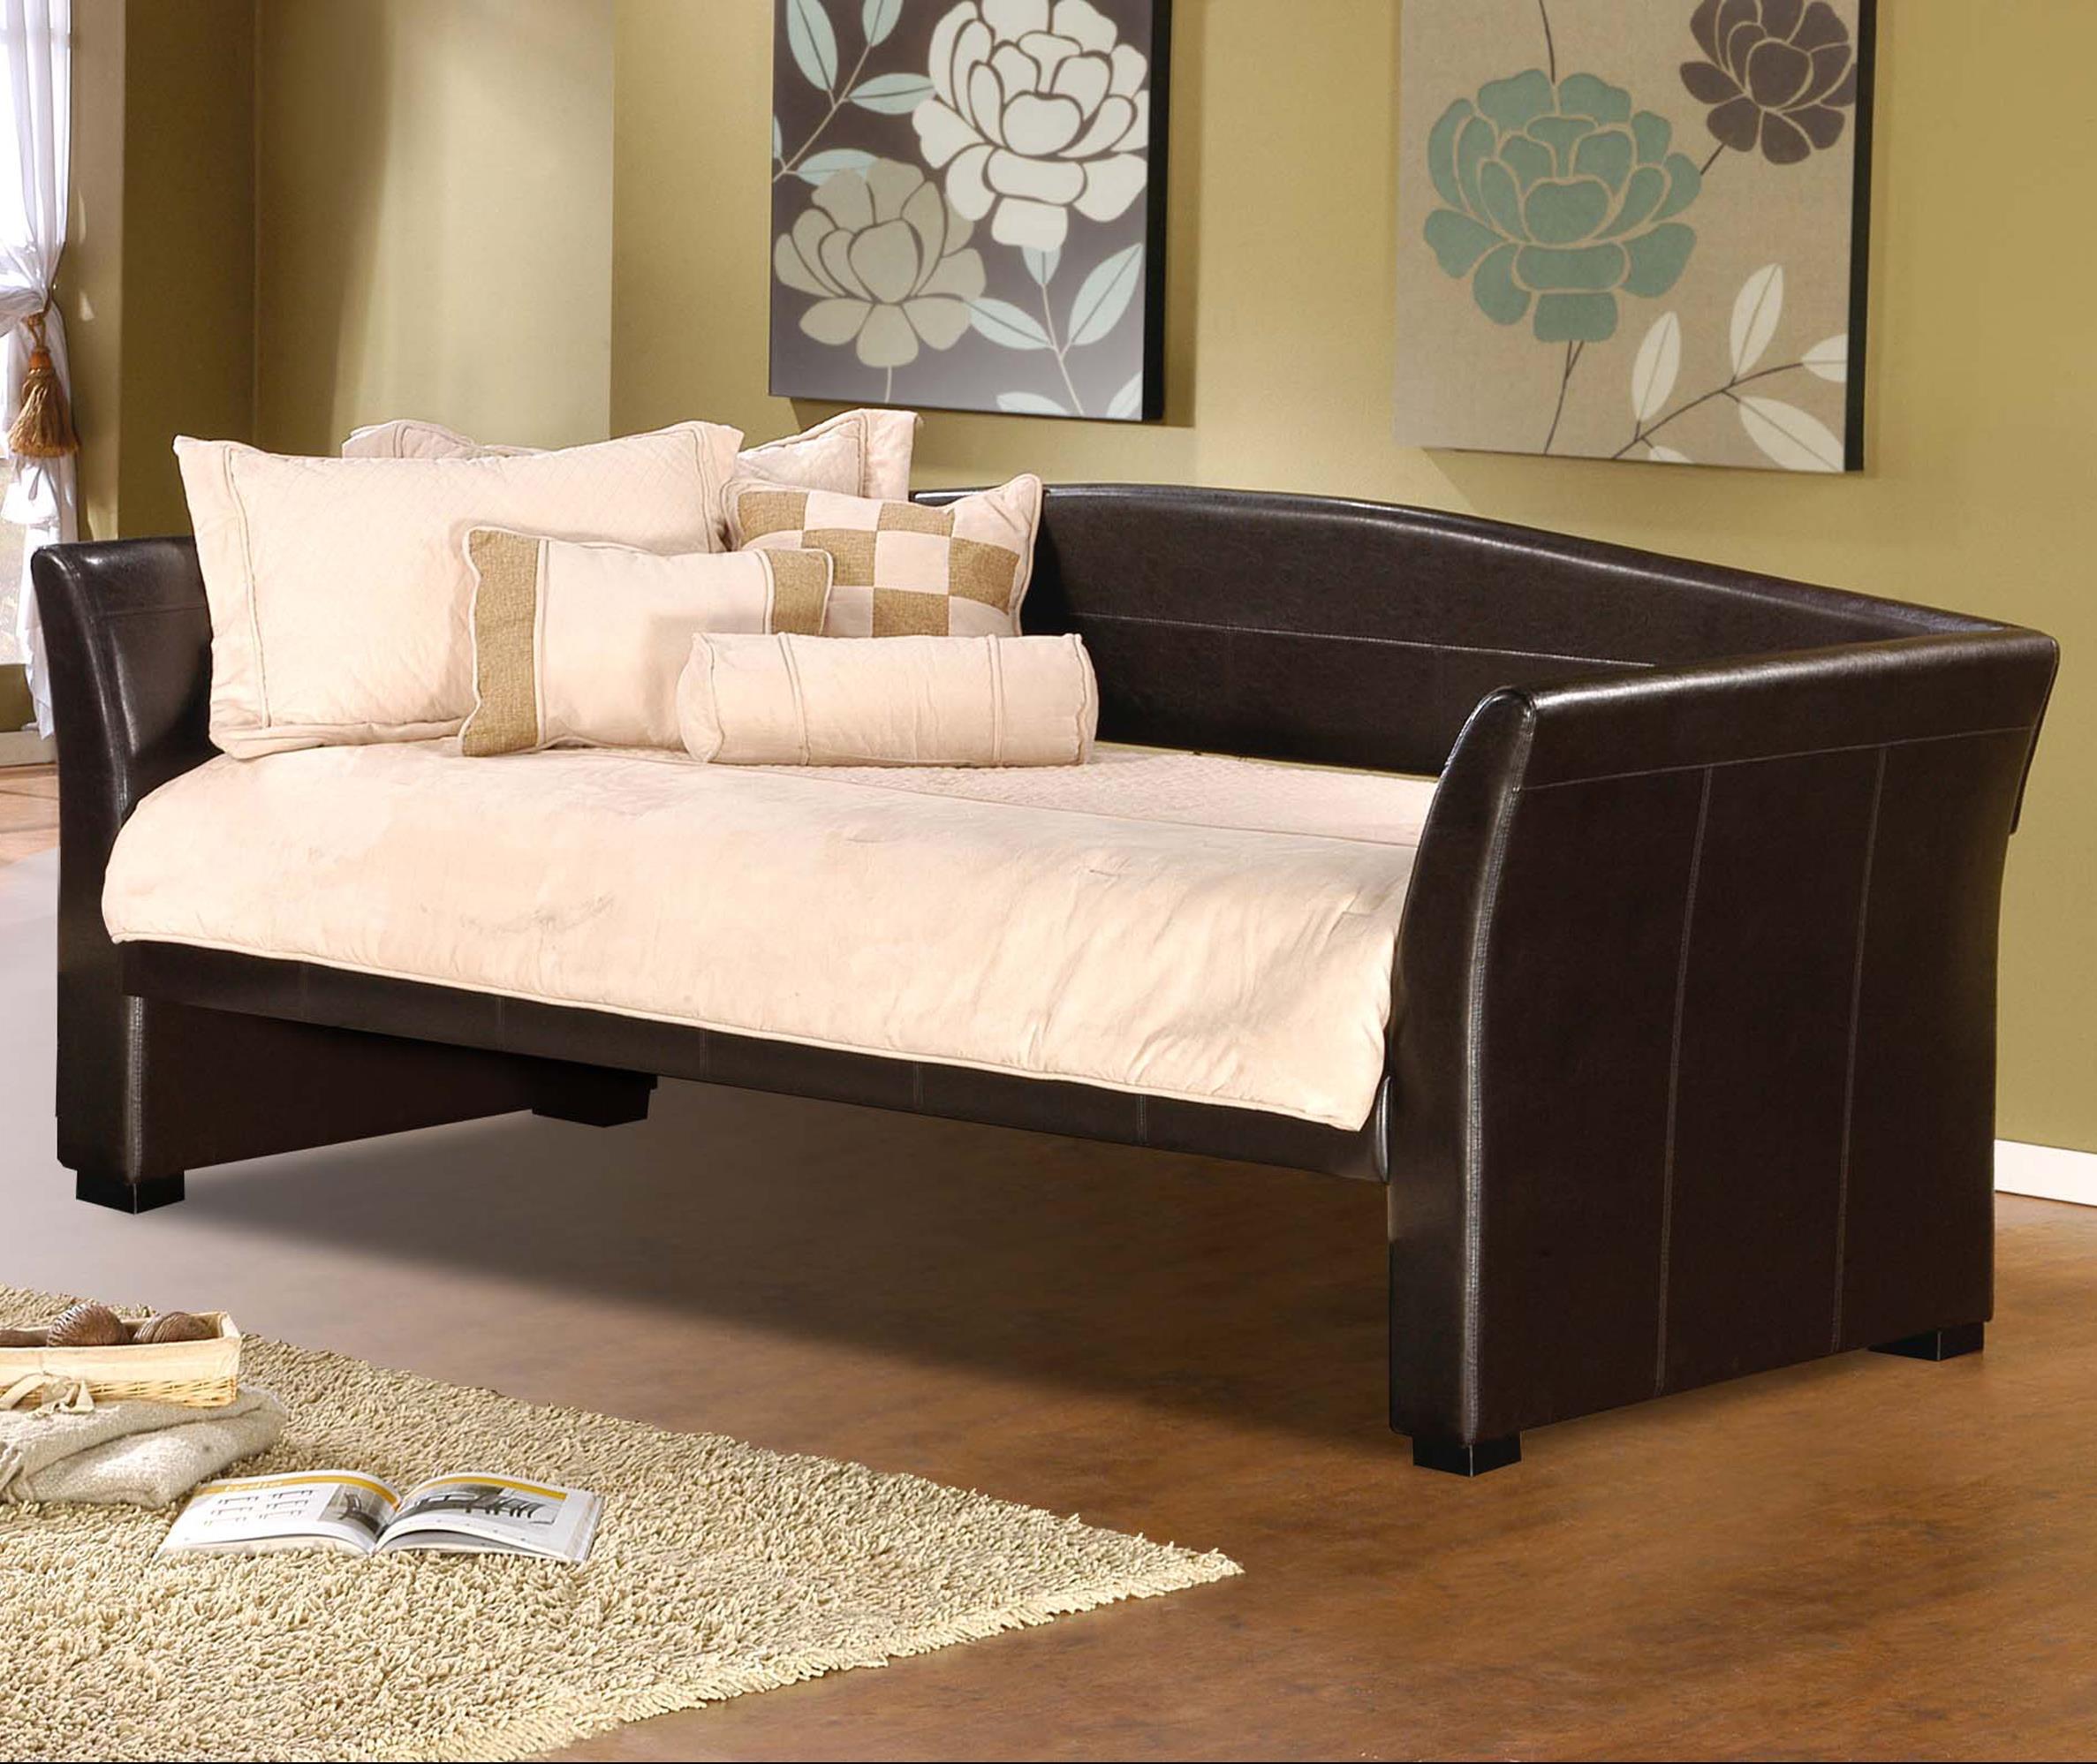 Hillsdale Daybeds Daybed - Item Number: 1560DB